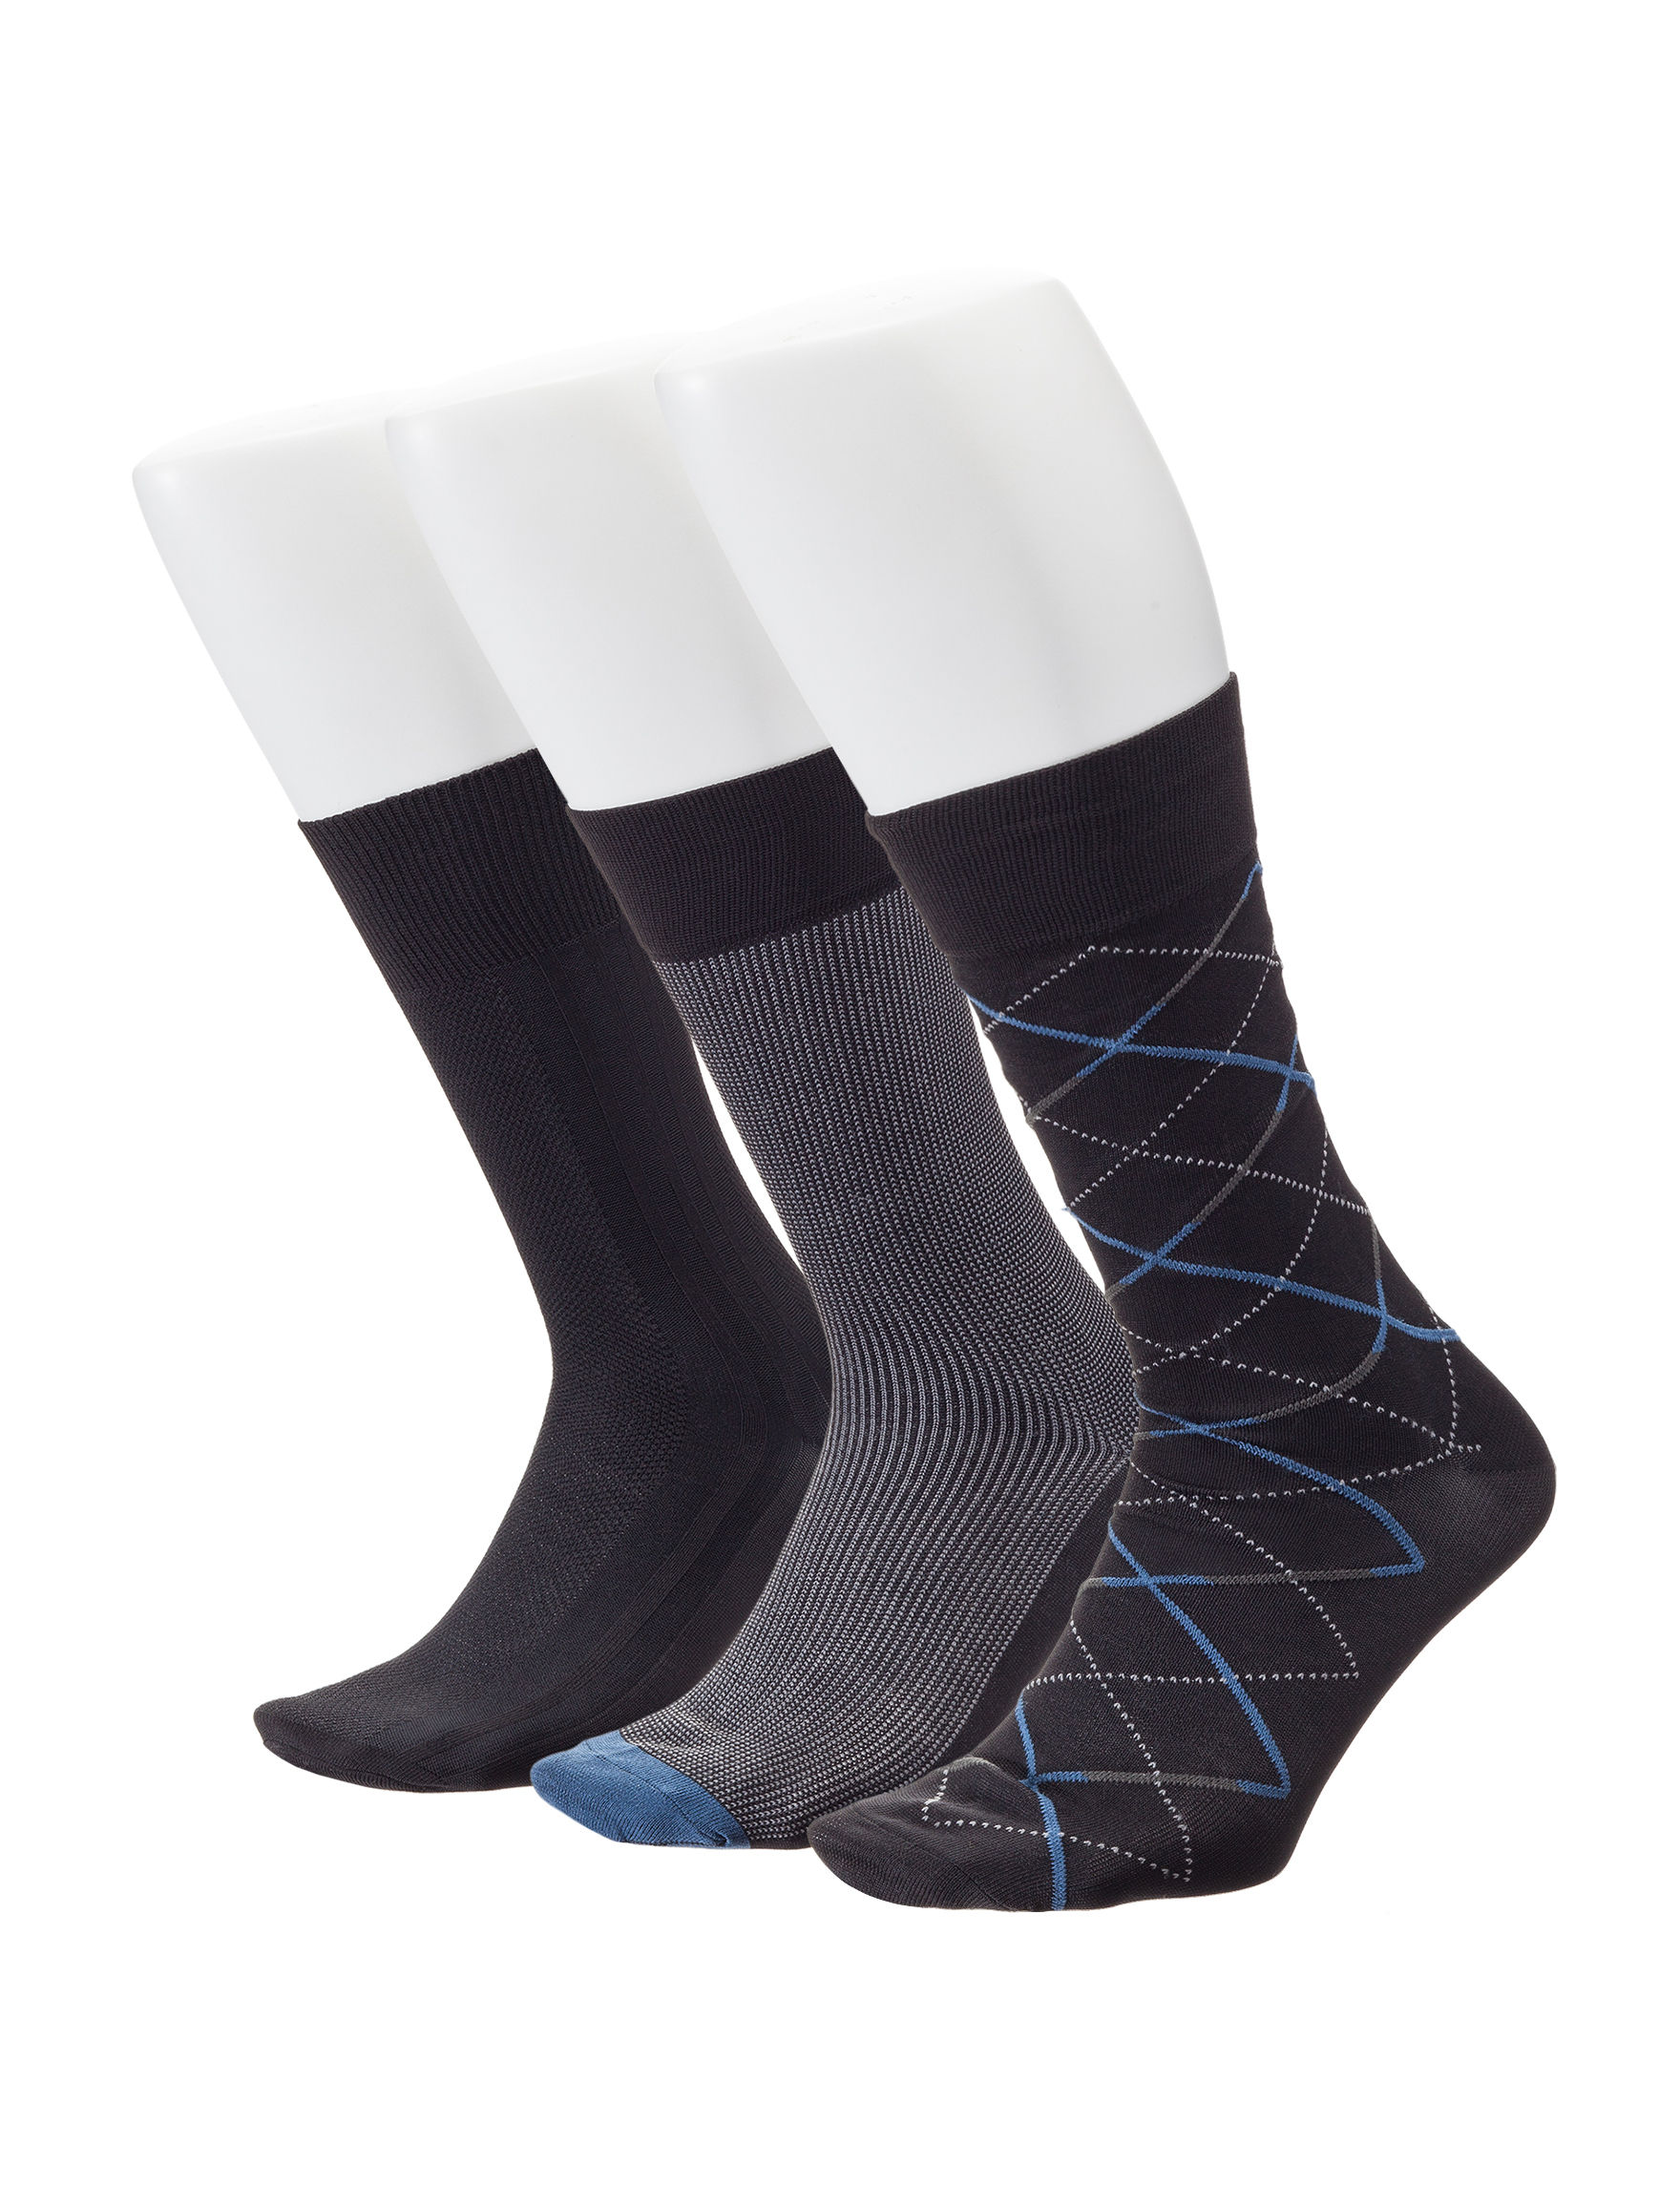 Ivy Crew Black Socks